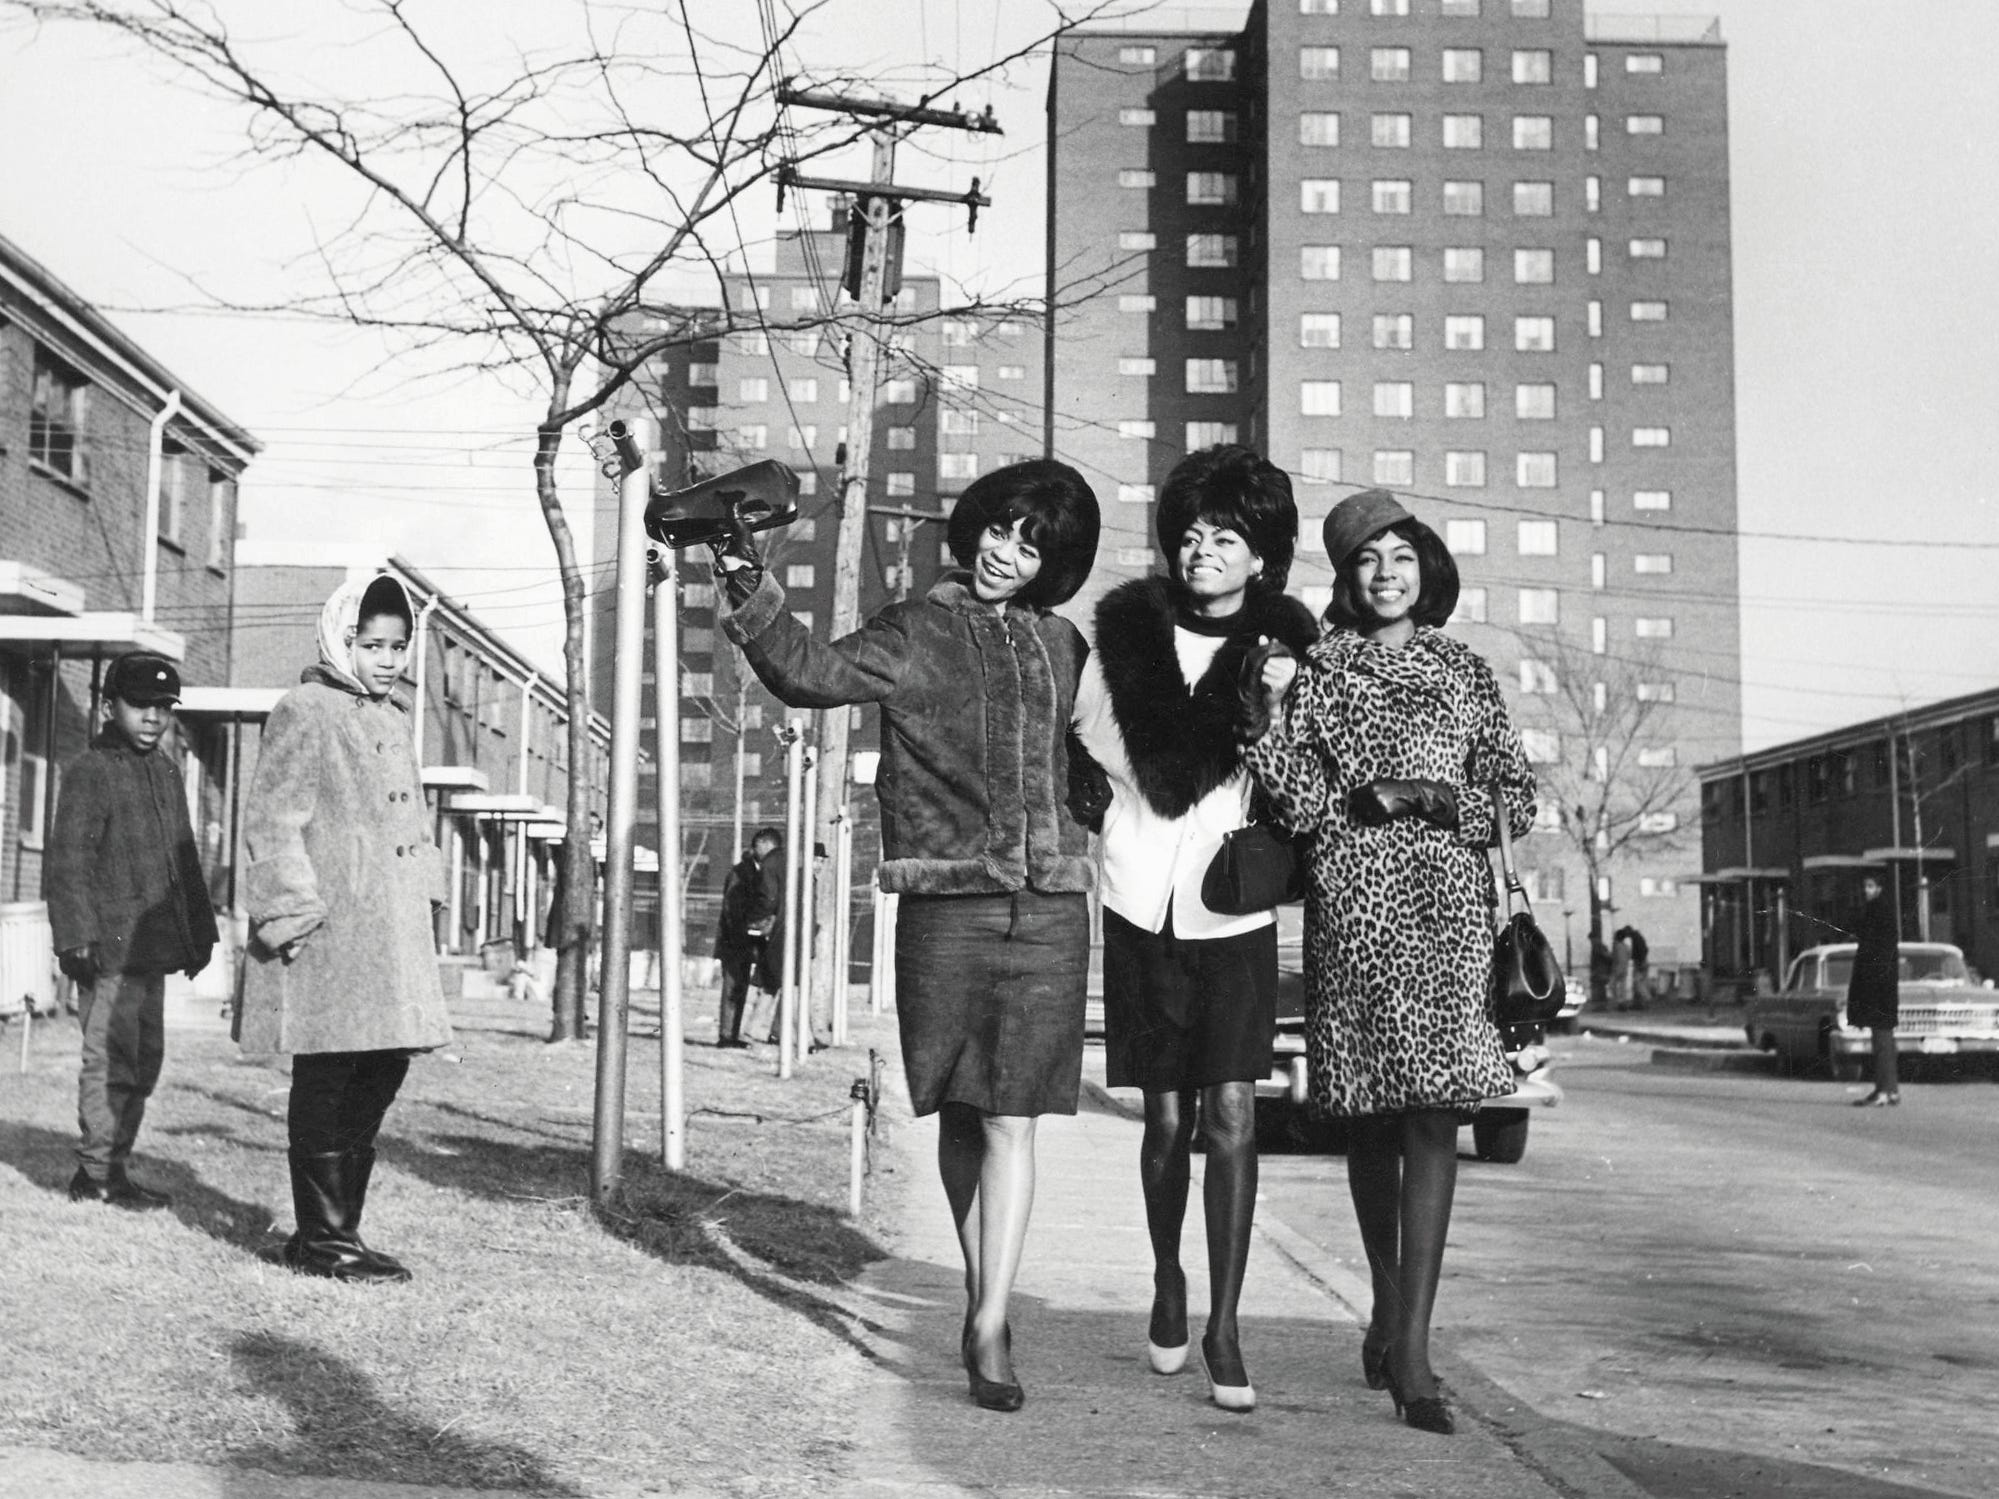 Florence Ballard, Diana Ross and Mary Wilson walk near Detroit's Brewster-Douglass housing projects in 1965. They grew up there, and remembered residents singing and dancing in the streets, inspired by songs they heard on the radio.